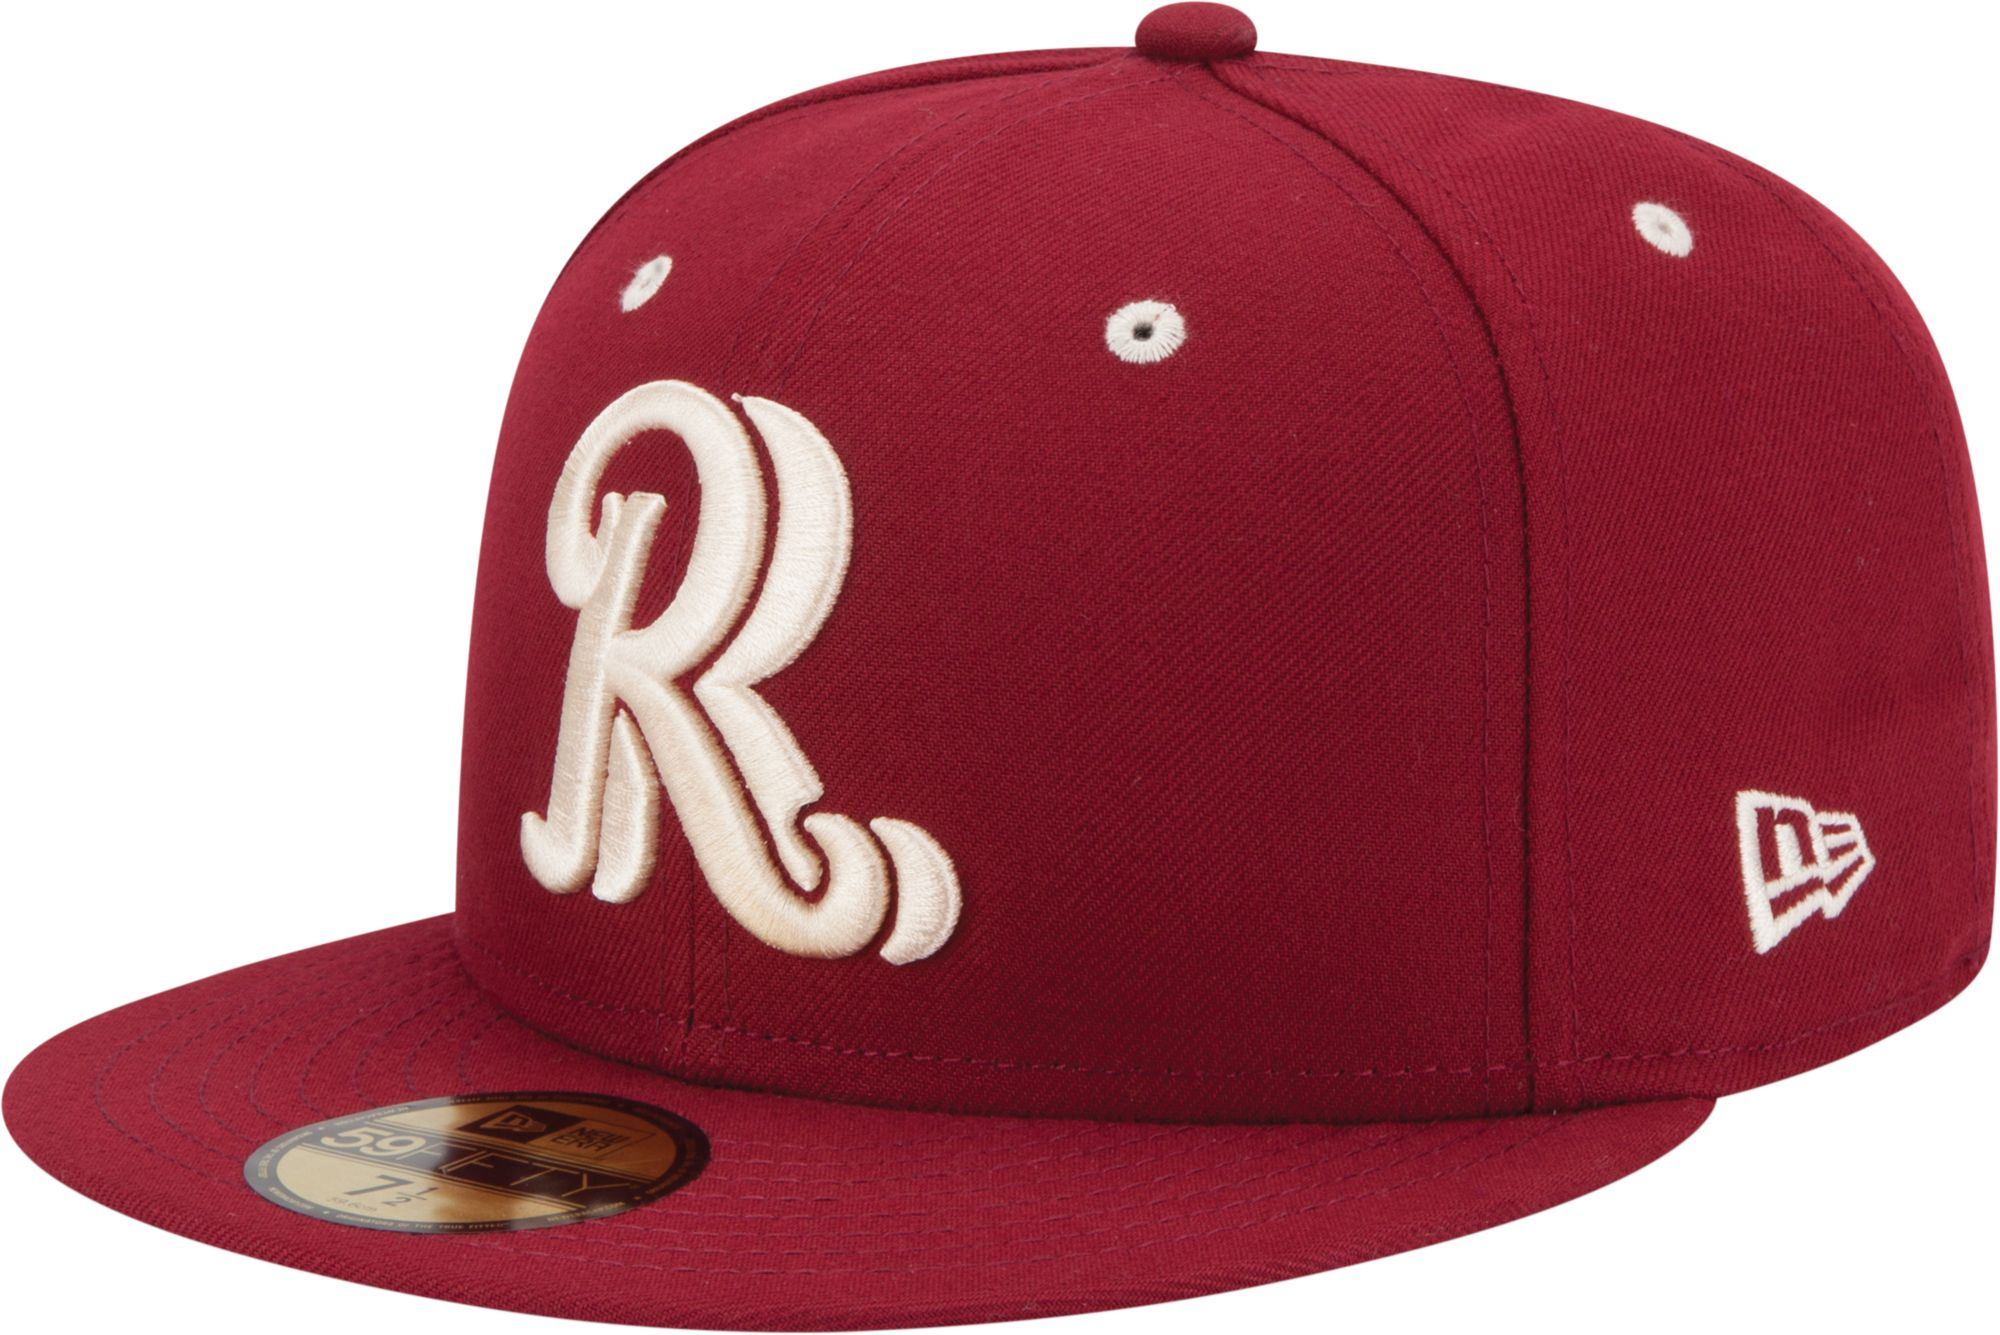 New Era Men's Frisco Rough Riders 59Fifty Red Authentic Hat, Size: 7 3/8, Multi